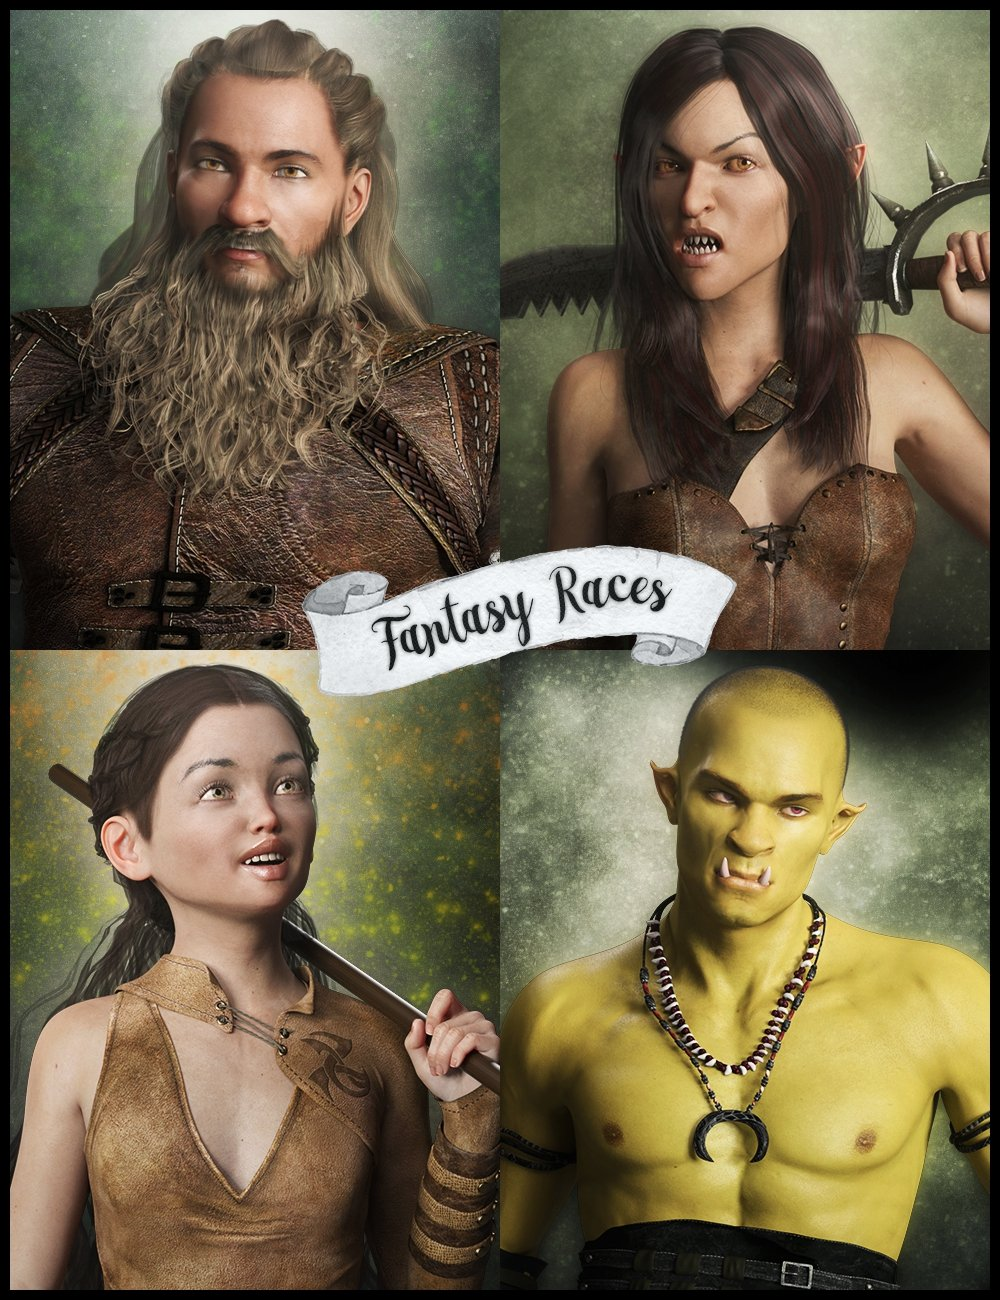 LY Fantasy Races HD Faces and Bodies by: Lyoness, 3D Models by Daz 3D